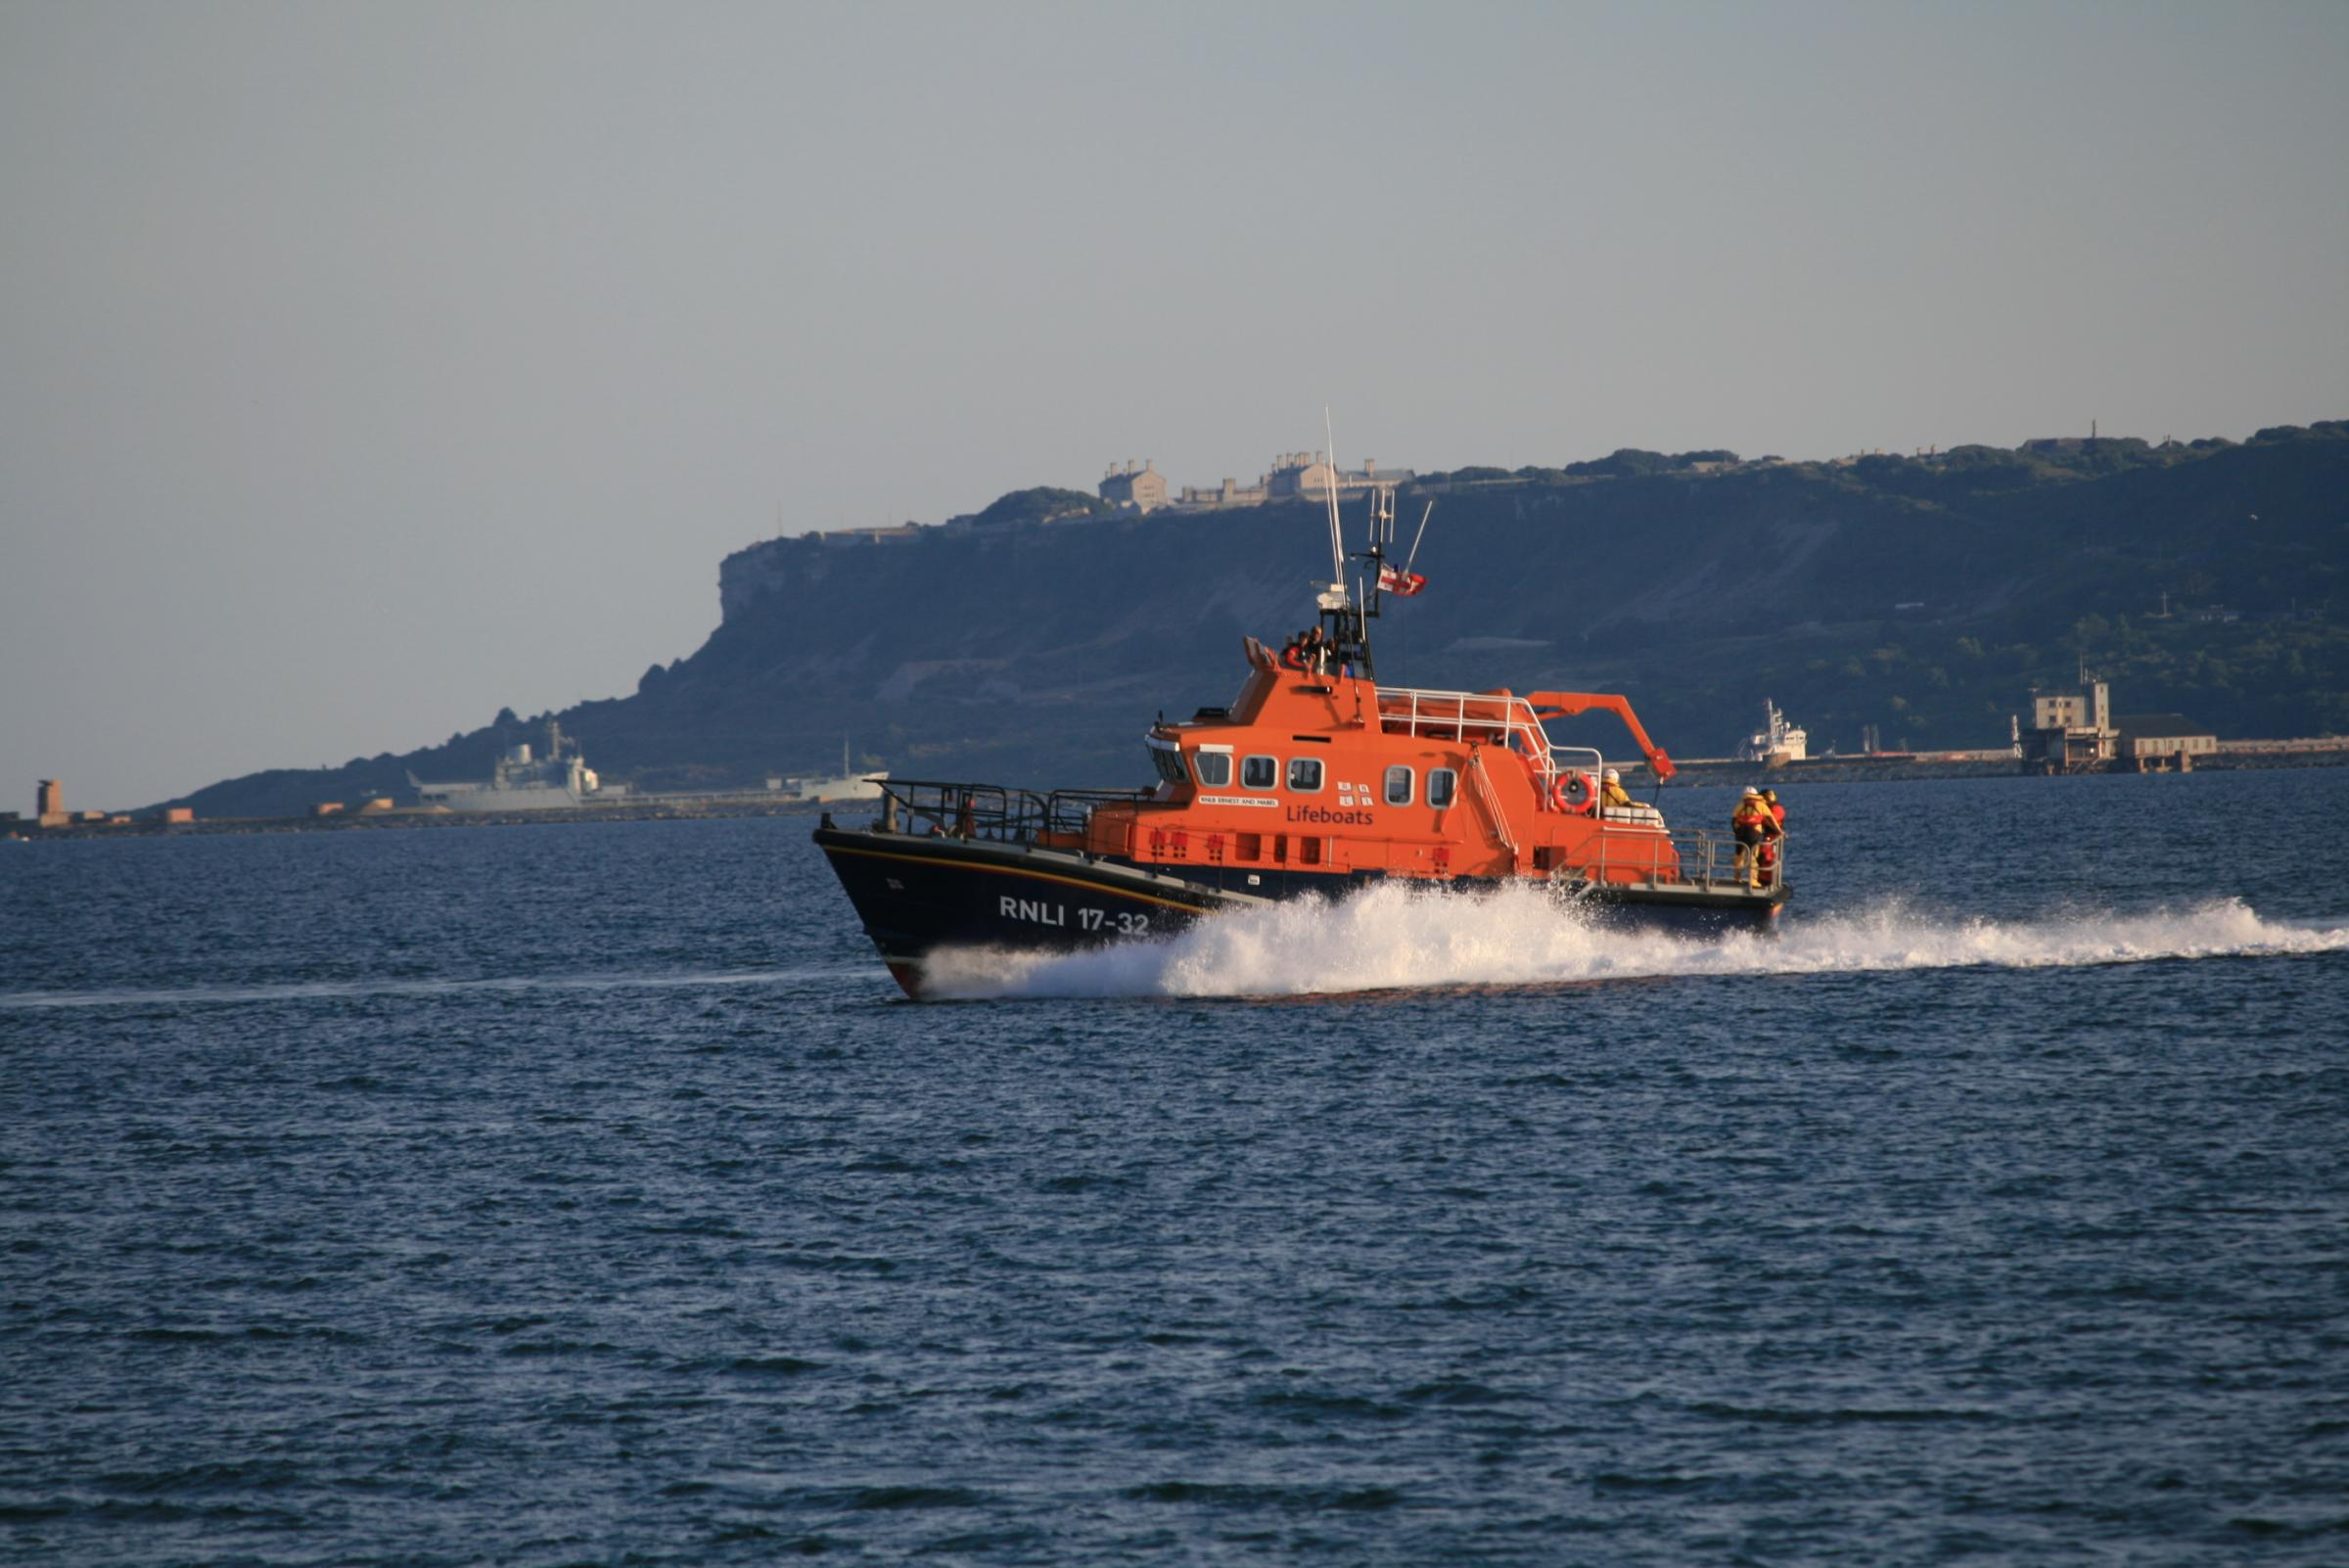 Picture: Weymouth Lifeboat